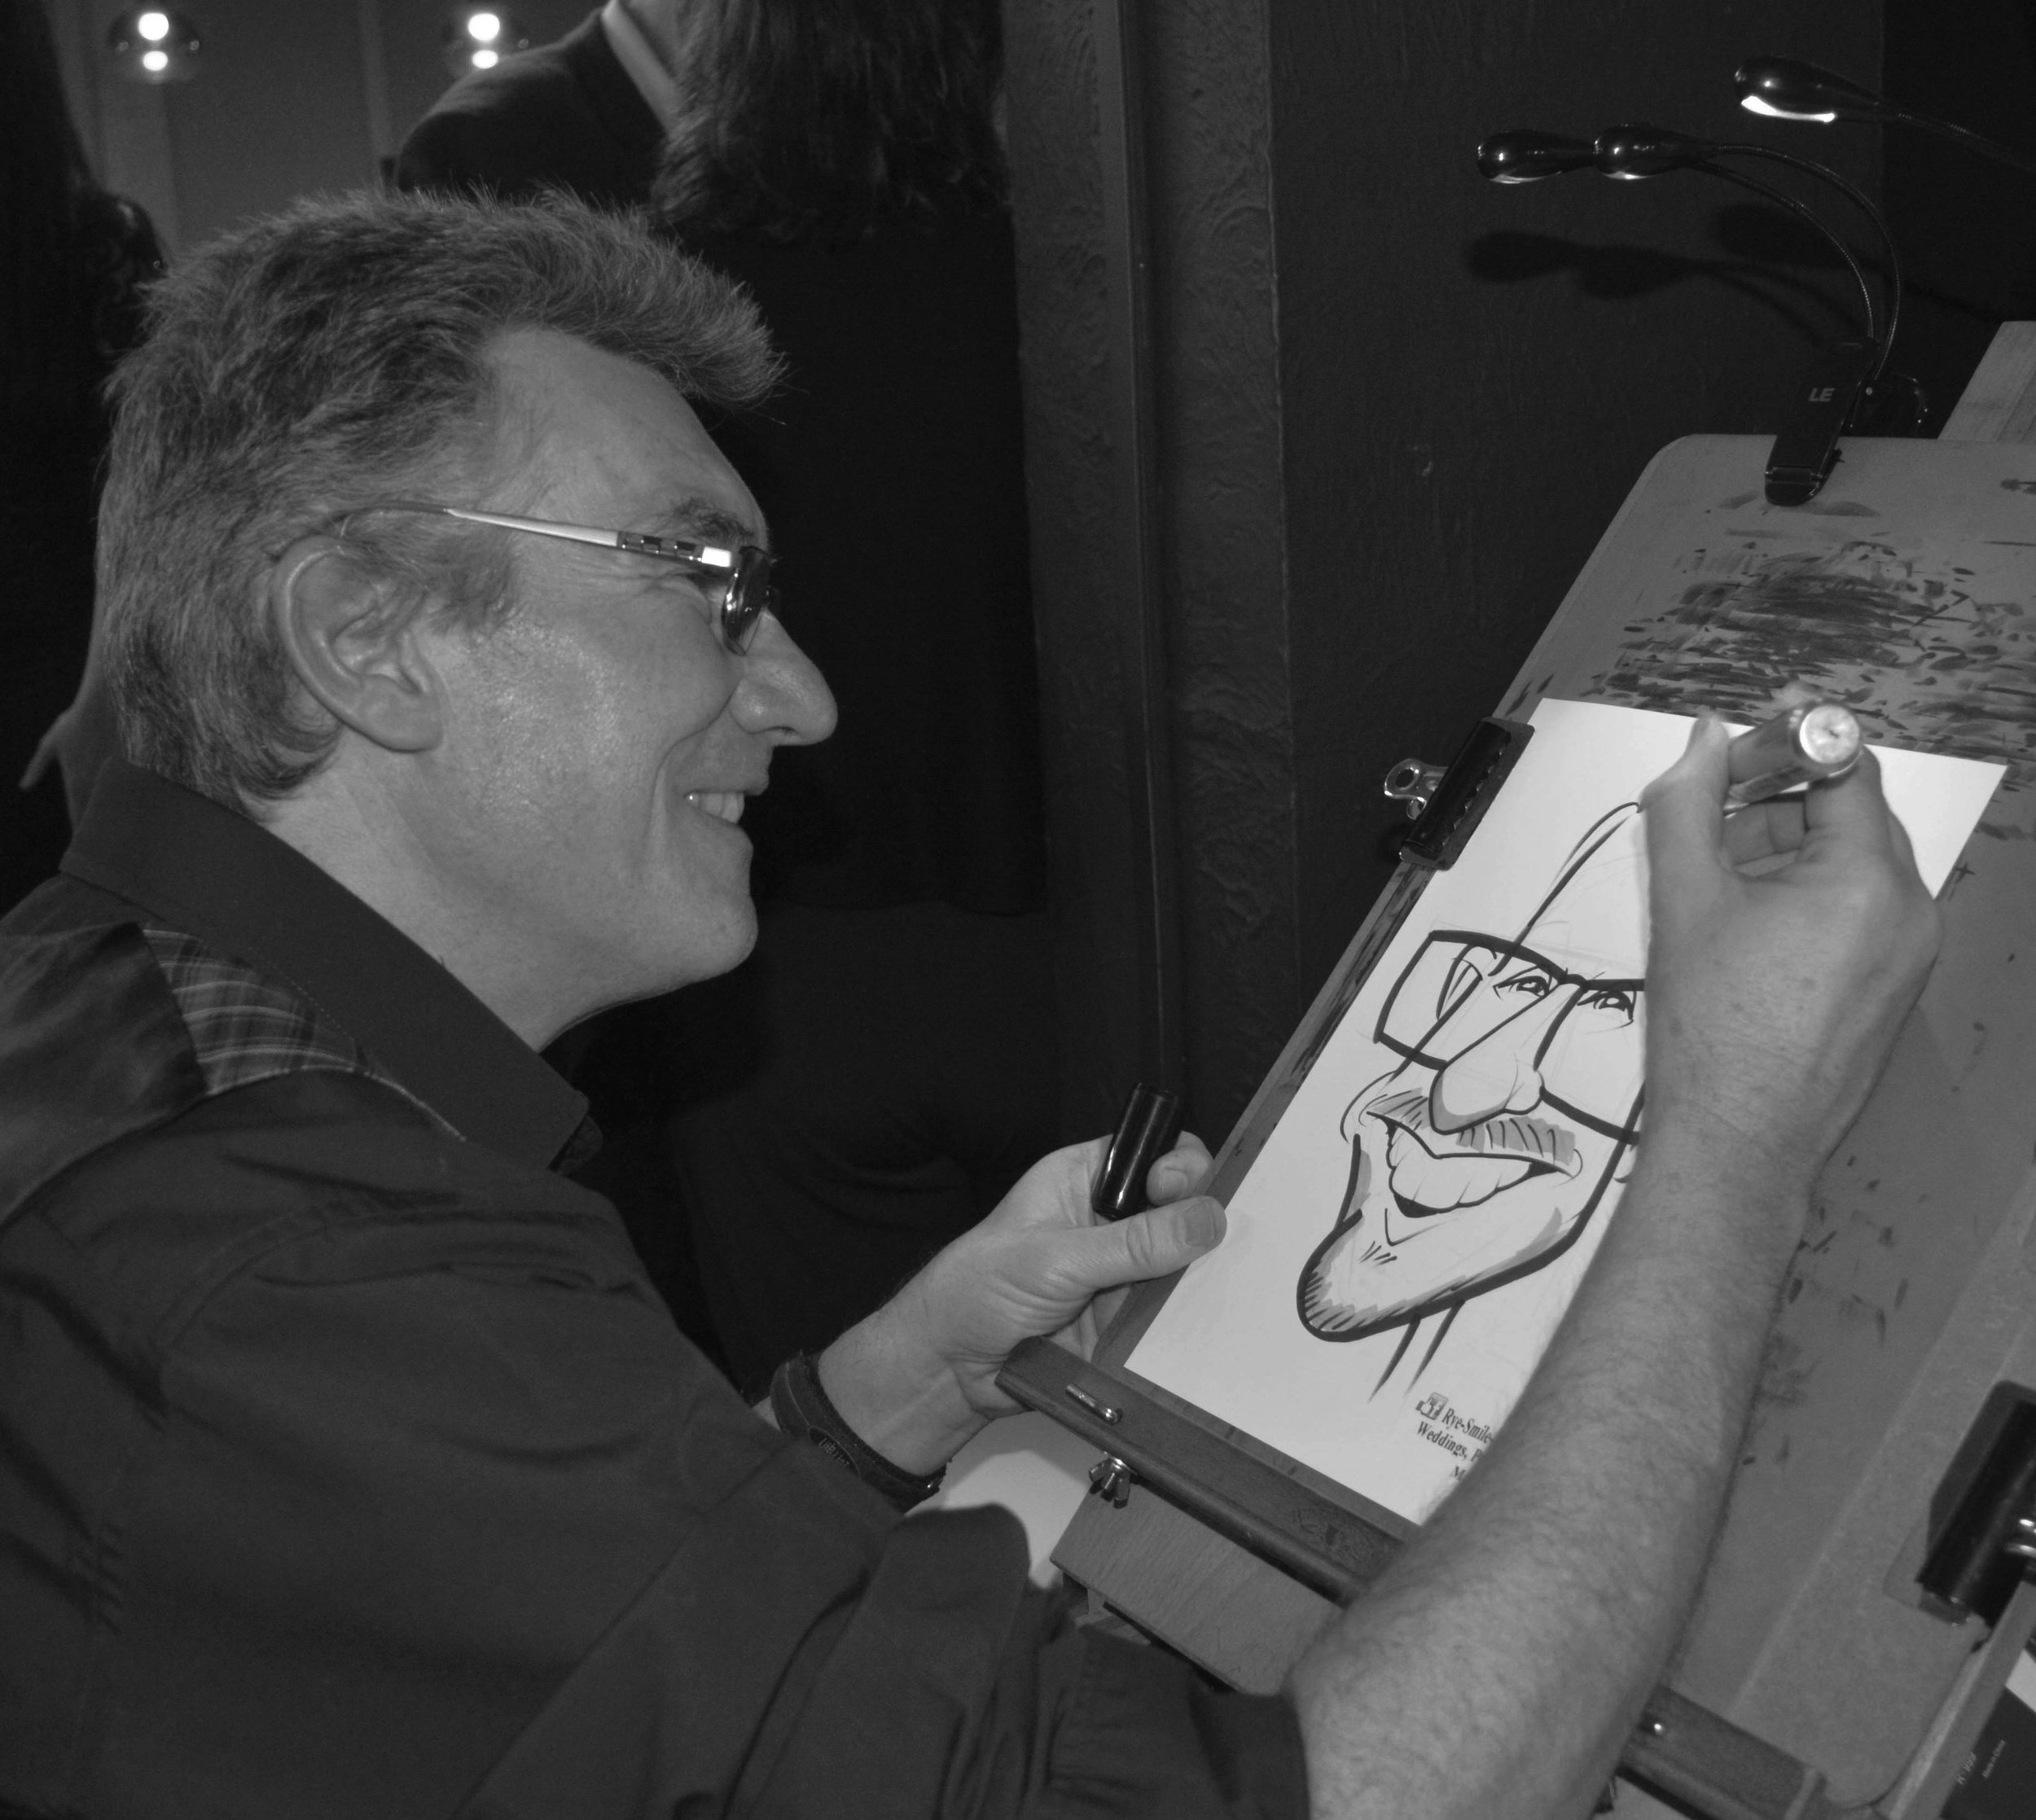 Rye Smile Caricatures - Kevin Drawing Live